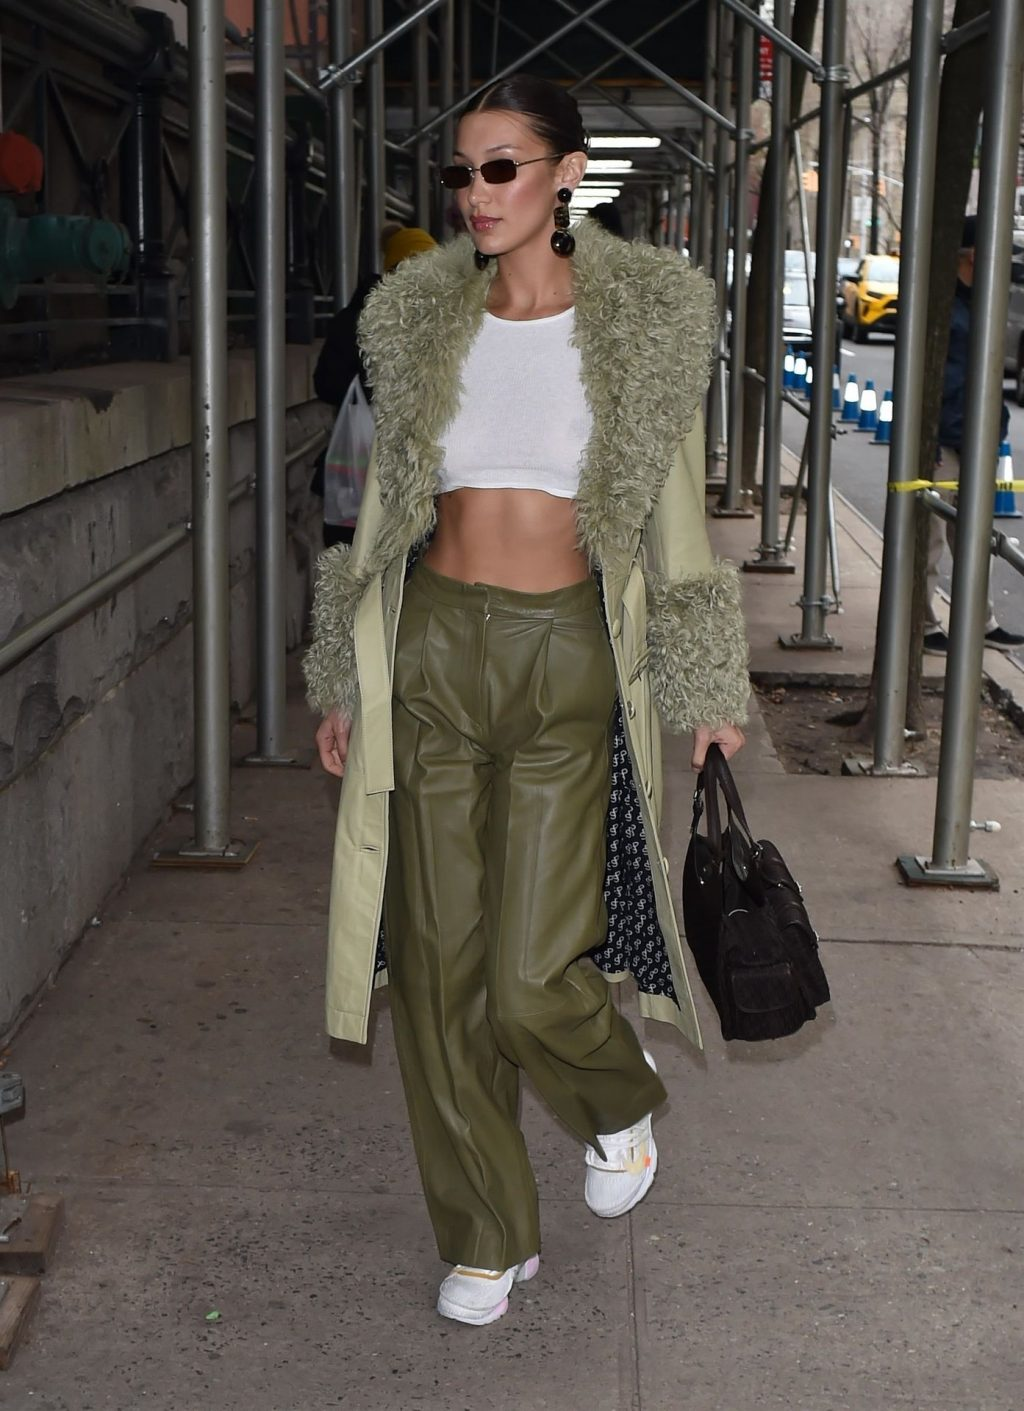 Bella Hadid See through The Fappening Blog 2 1 1024x1411 - Braless Bella Hadid Arrives at the Park Avenue Armory for the Marc Jacobs Fashion Show (59 Photos)